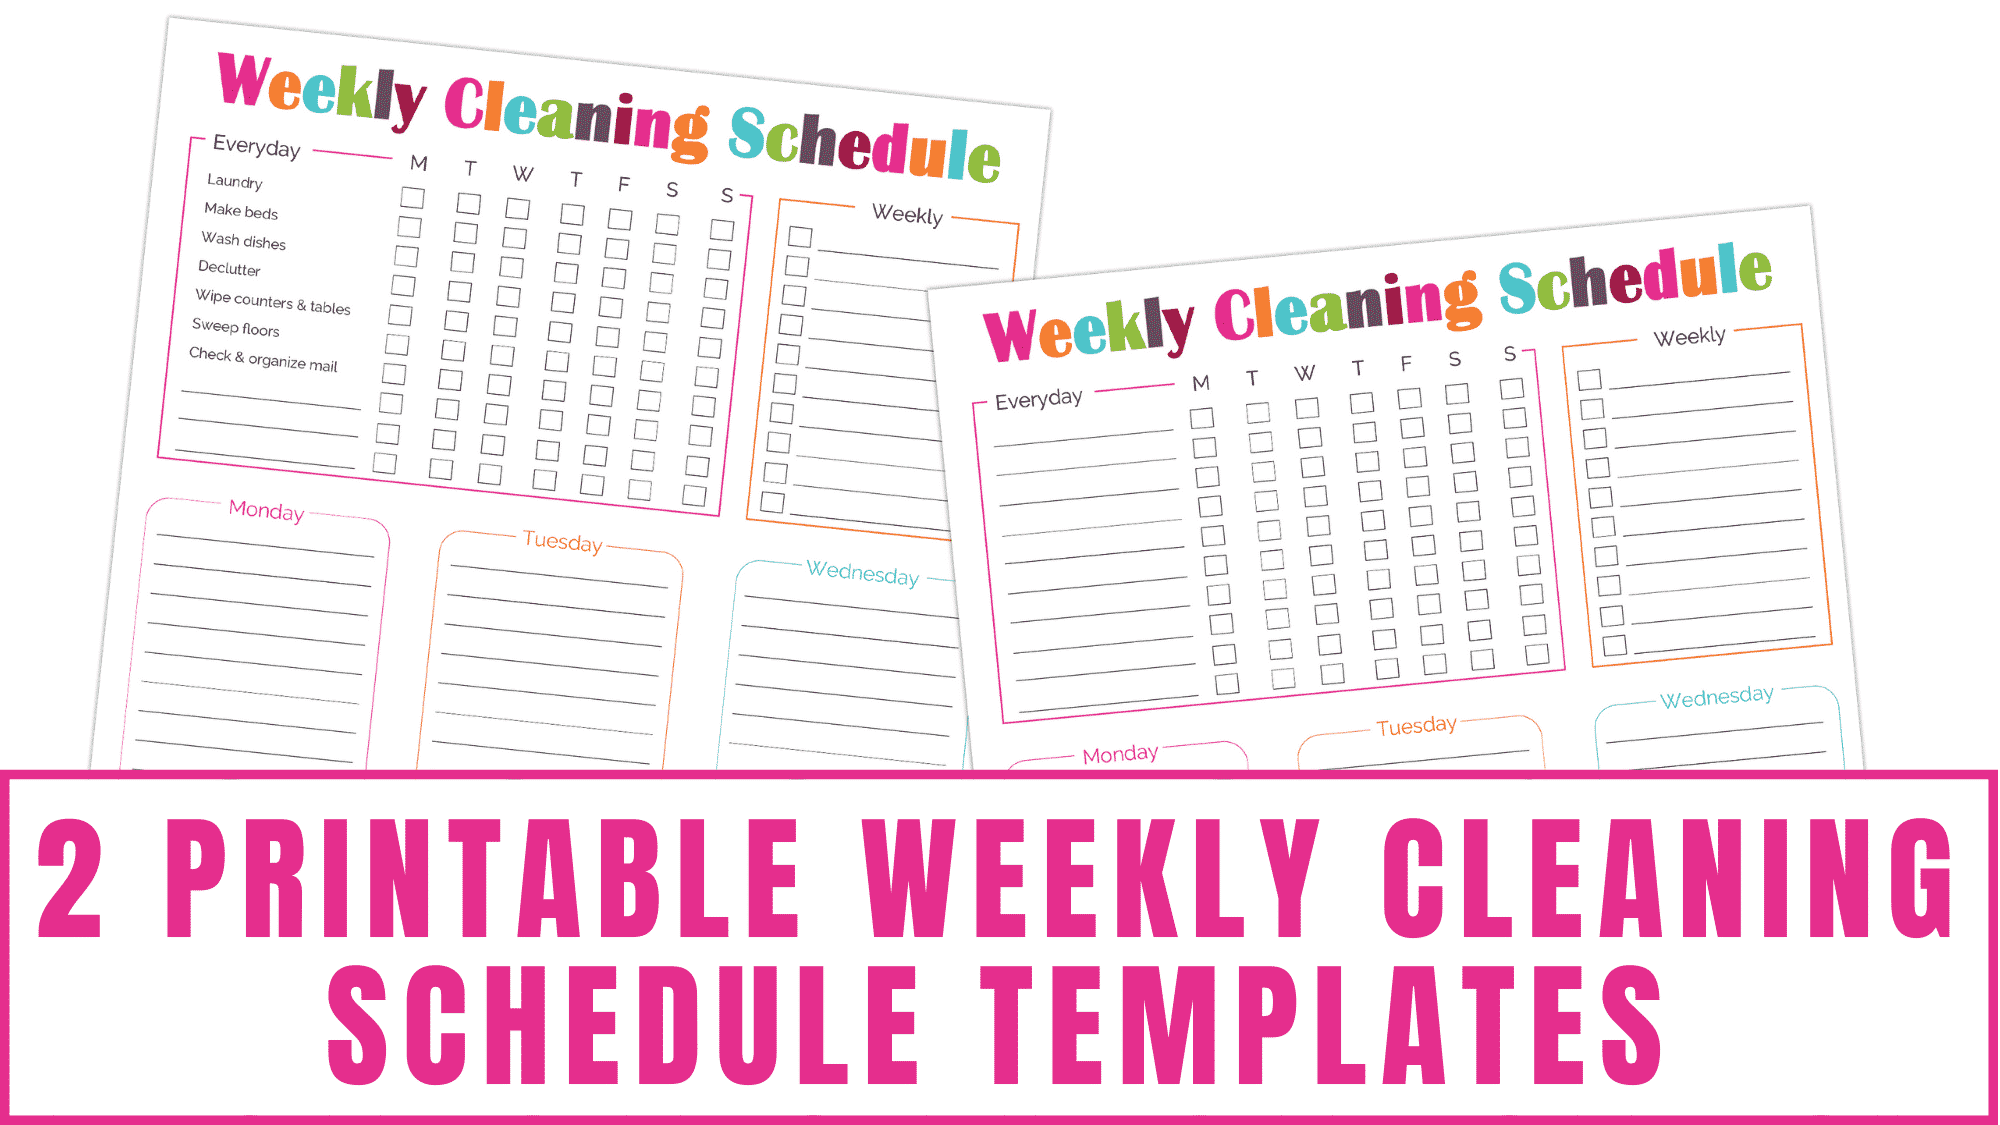 These printable weekly cleaning schedule templates can be paired with the daily cleaning schedule printables to help you hold yourself accountable with your housework.